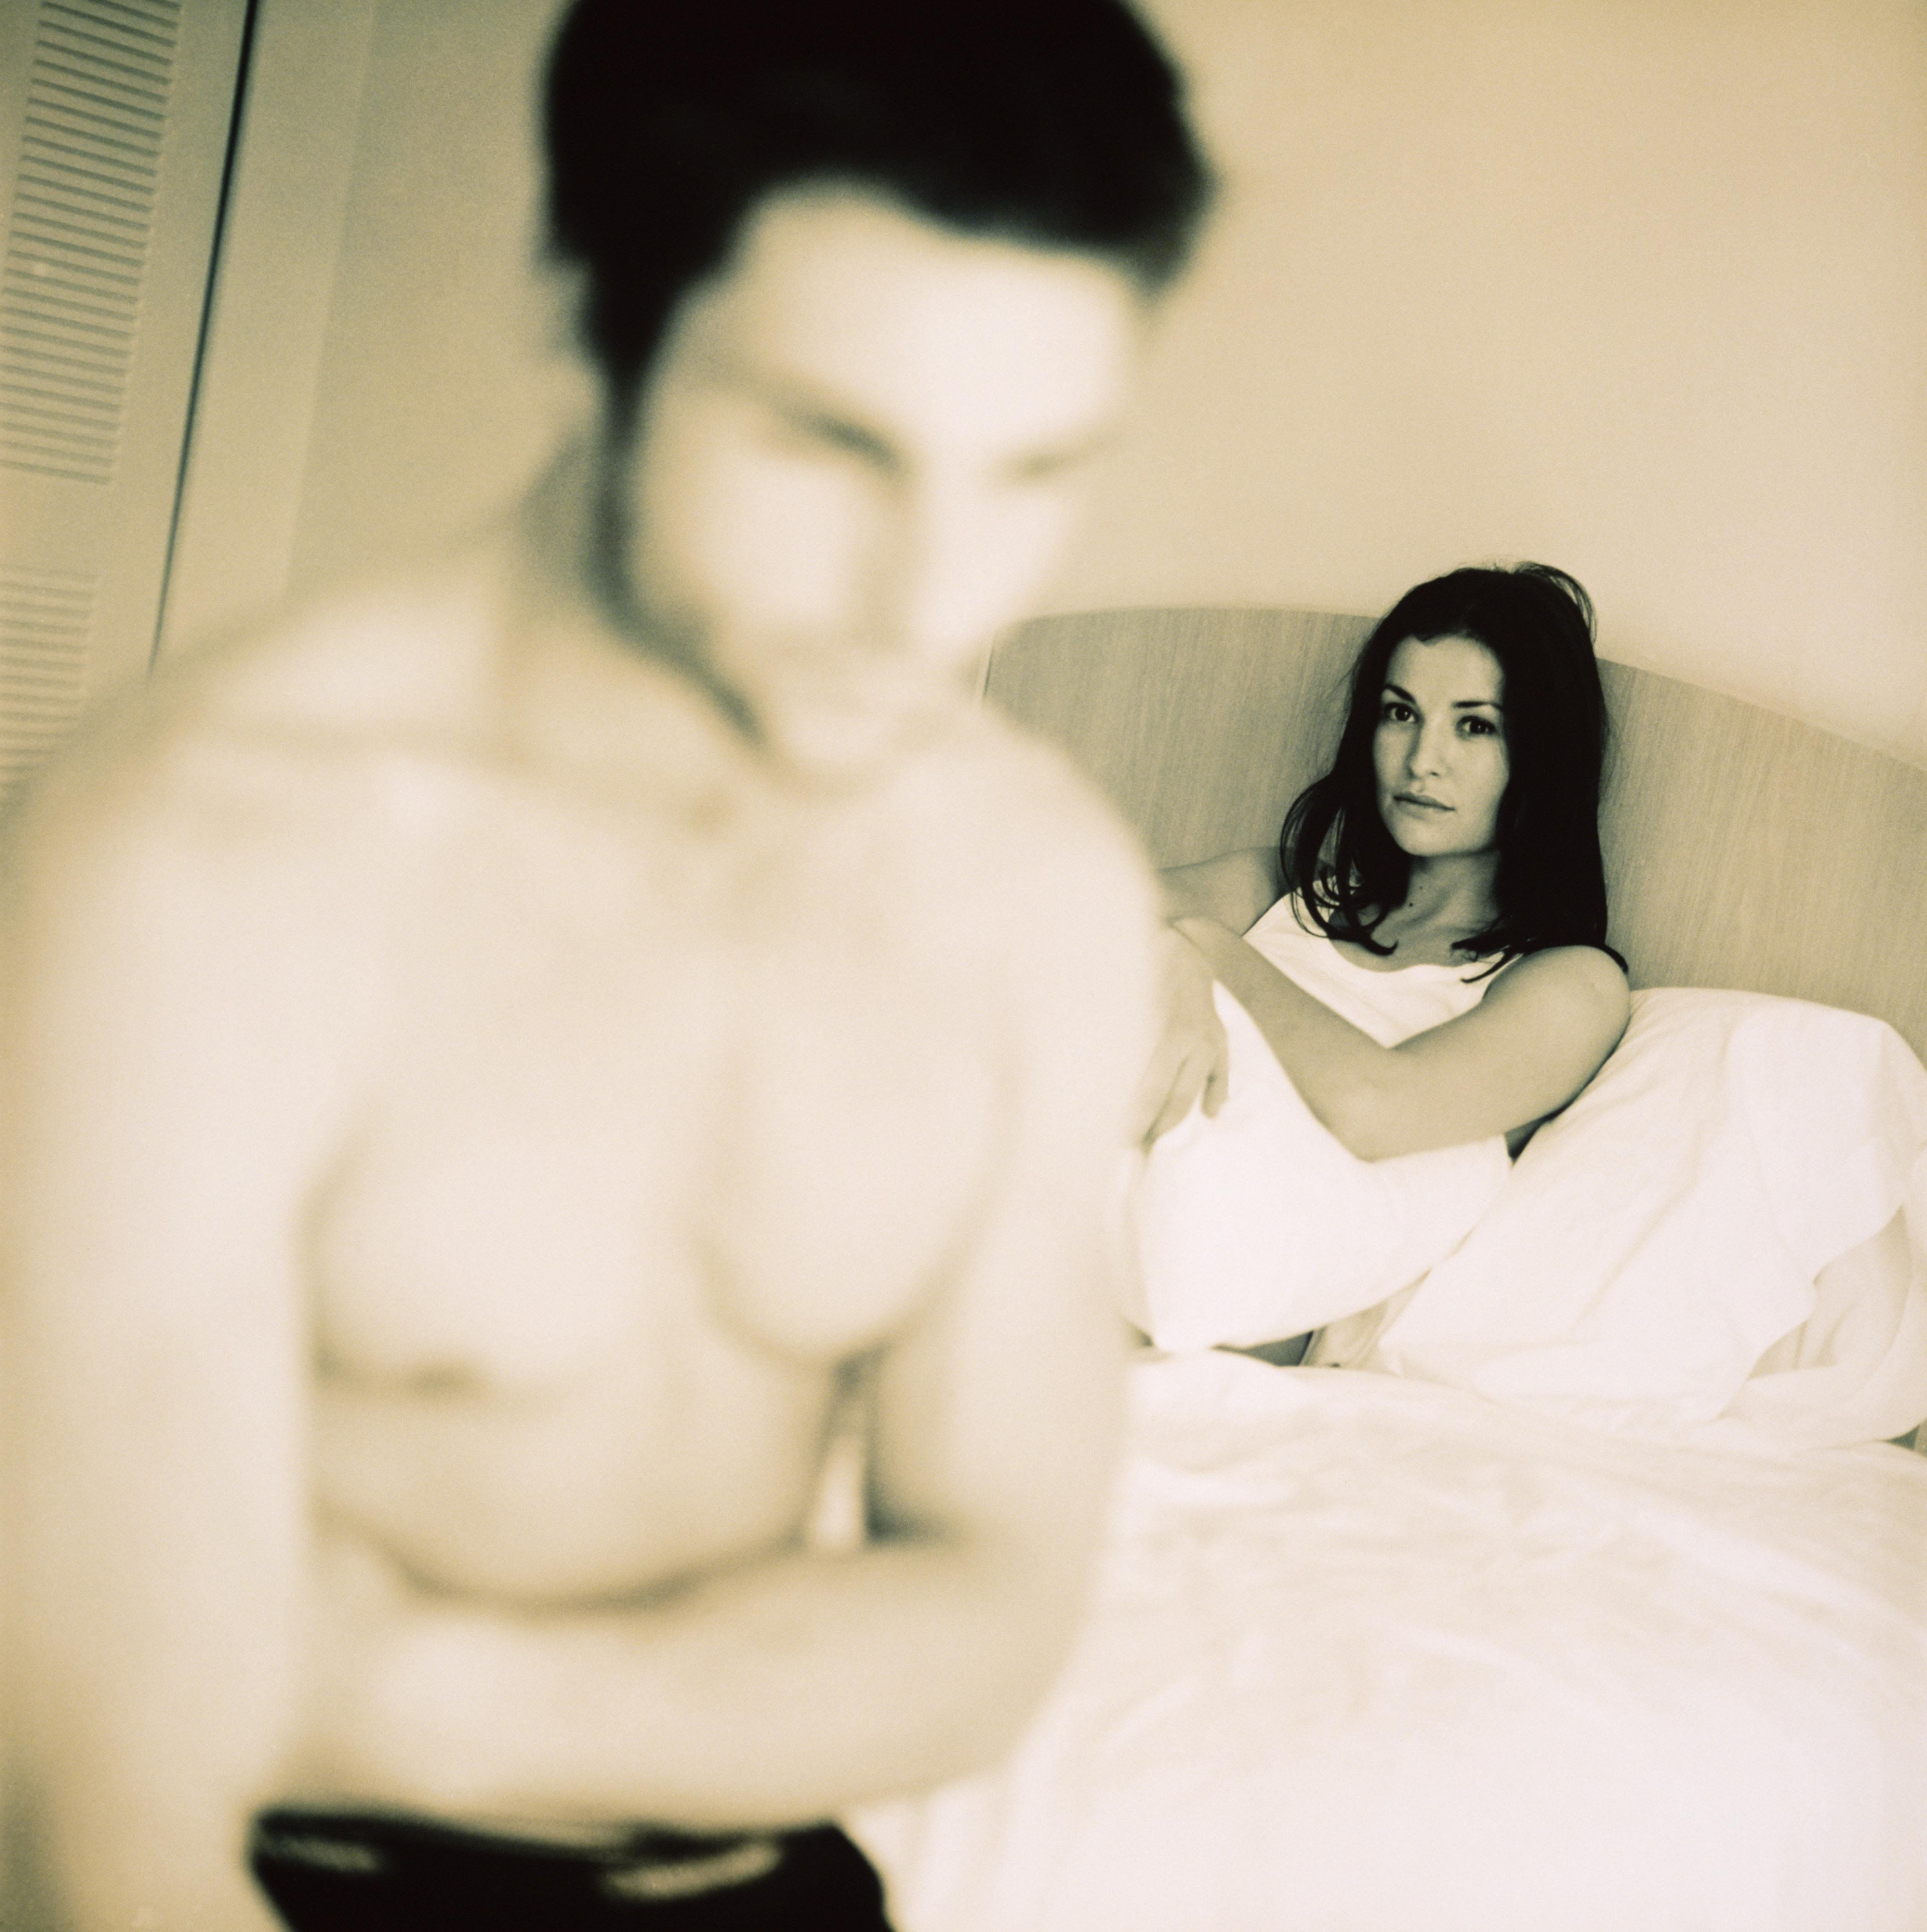 Badgering wife sexual dysfunction